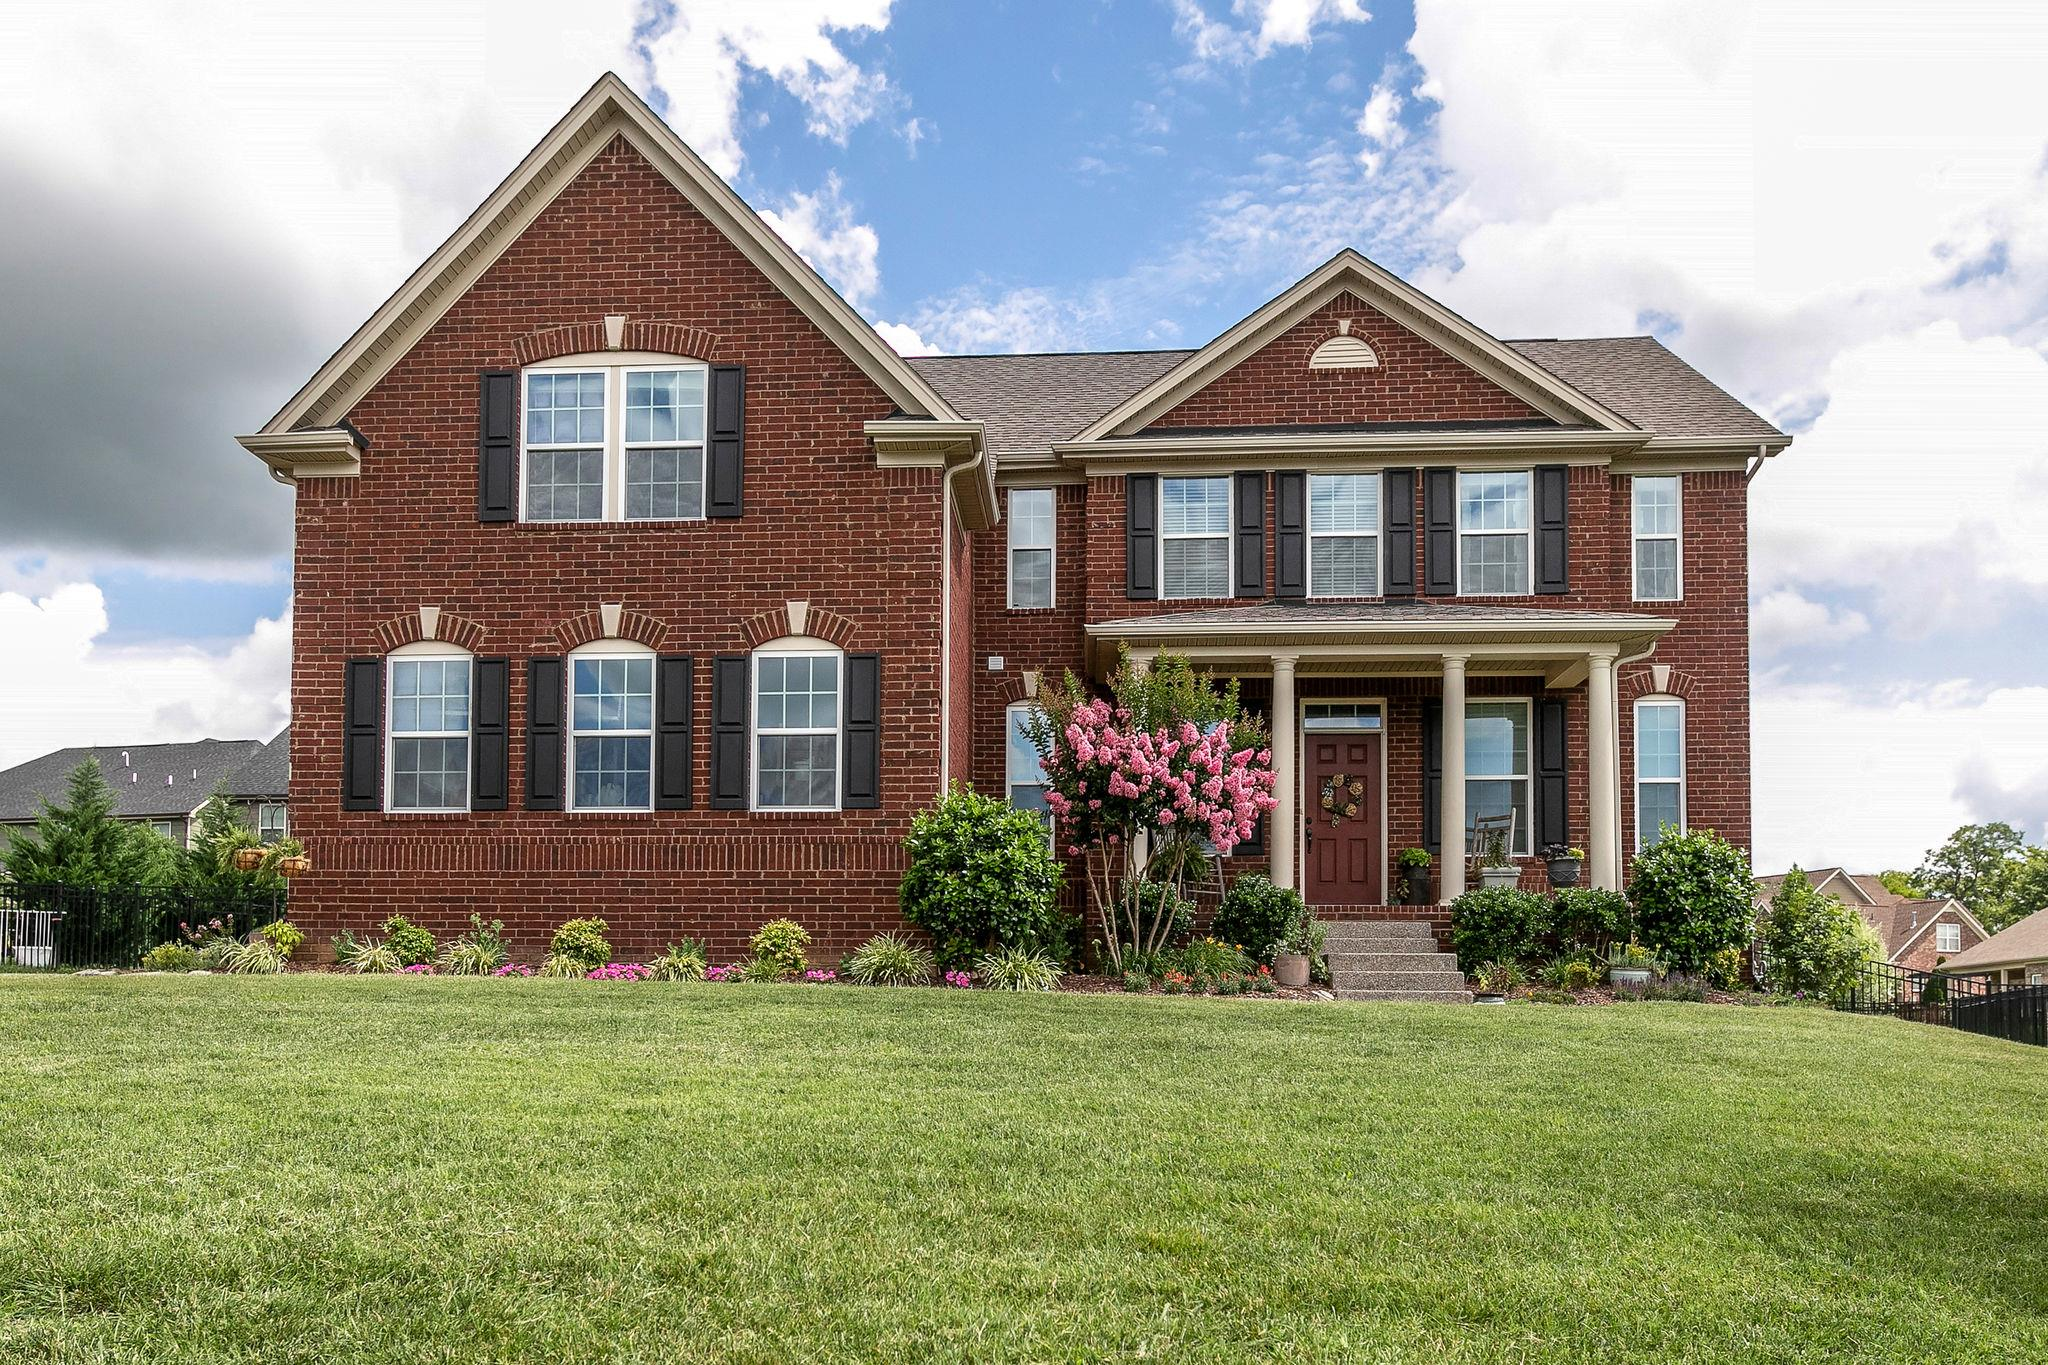 5007 Paddy Trace, Spring Hill, TN 37174 - Spring Hill, TN real estate listing